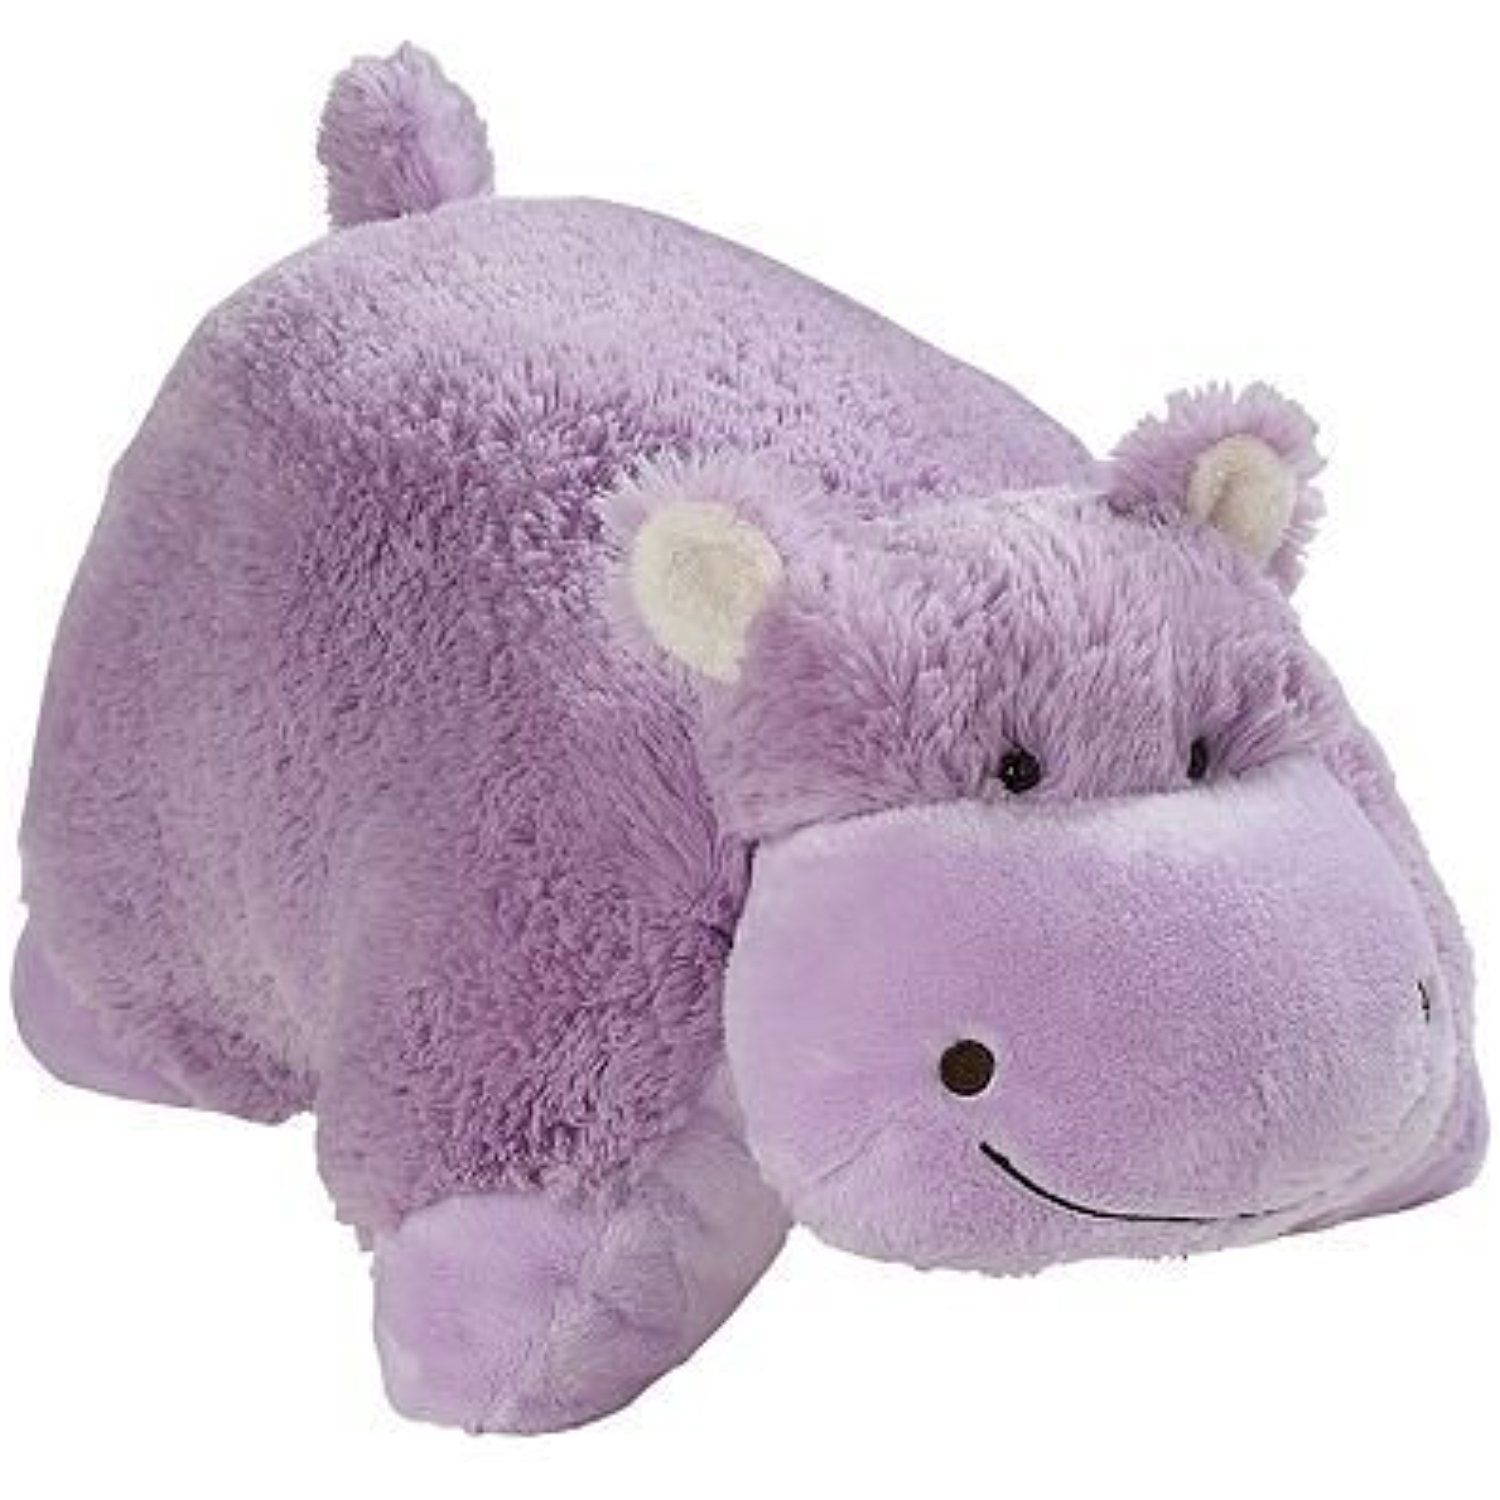 Peewee Hippo Pillow Pets Purple 11 Read More At The Image Link This Is An Affiliate Link Plushpillows Animal Pillows Huggable Stuffed Animals